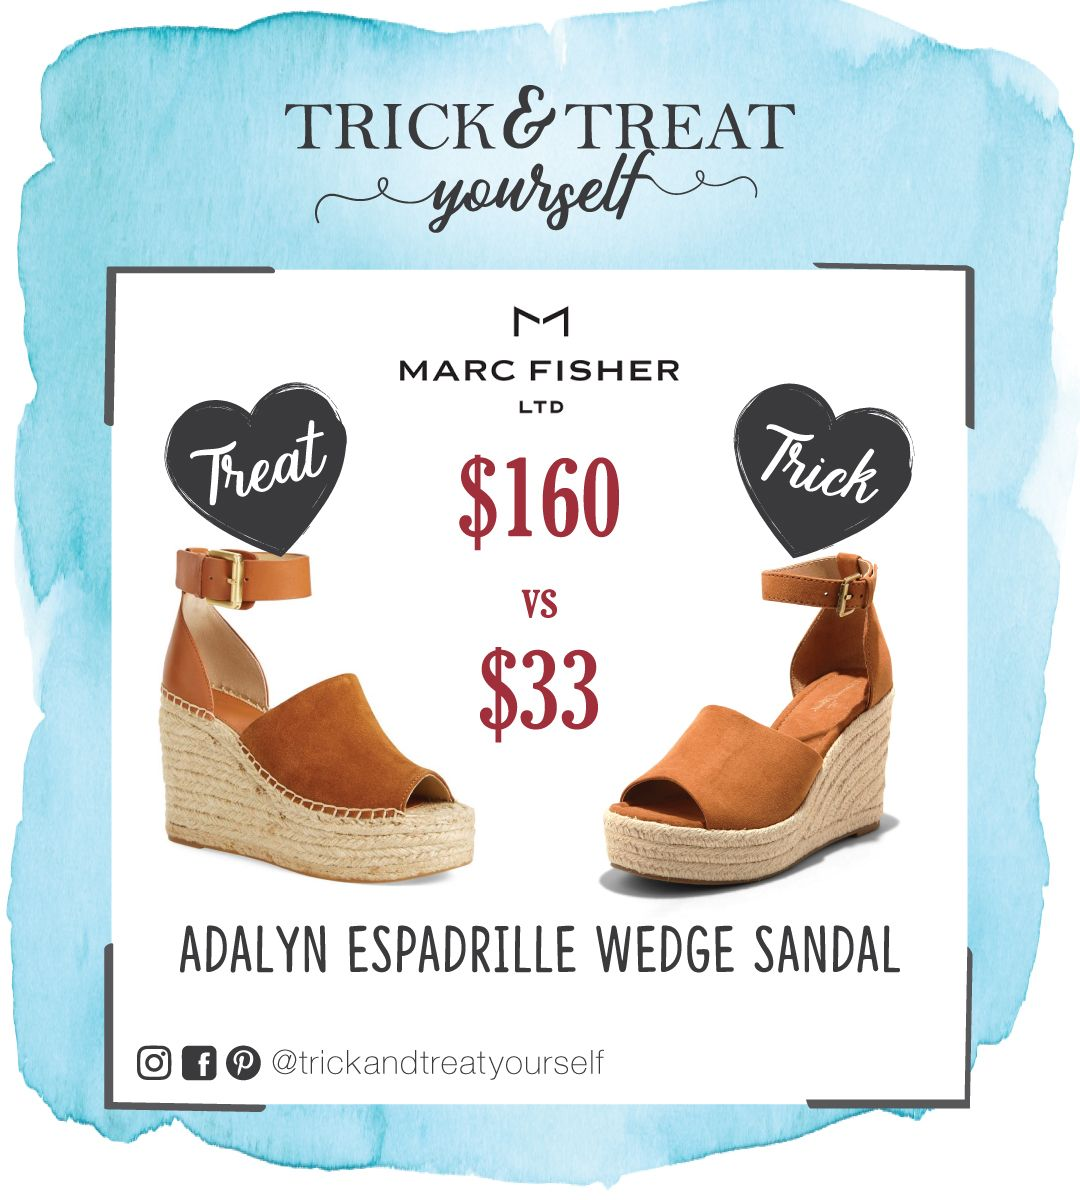 468b50c1ef323 SHOE DUPE ALERT @target Has a PERFECT dupe for the @marc.fisher Adalyn  Espadrille Wedge Sandal. @target has the Women's Emery Espadrille Sandals -  Universal ...